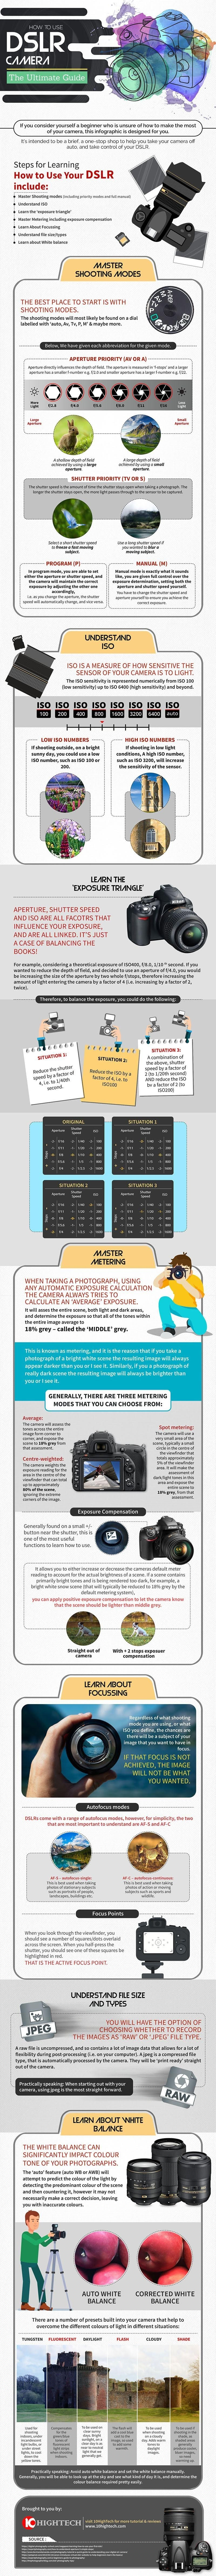 How to Take Stunning Photo with DSLR Camera – Beginners Guide: #infographic